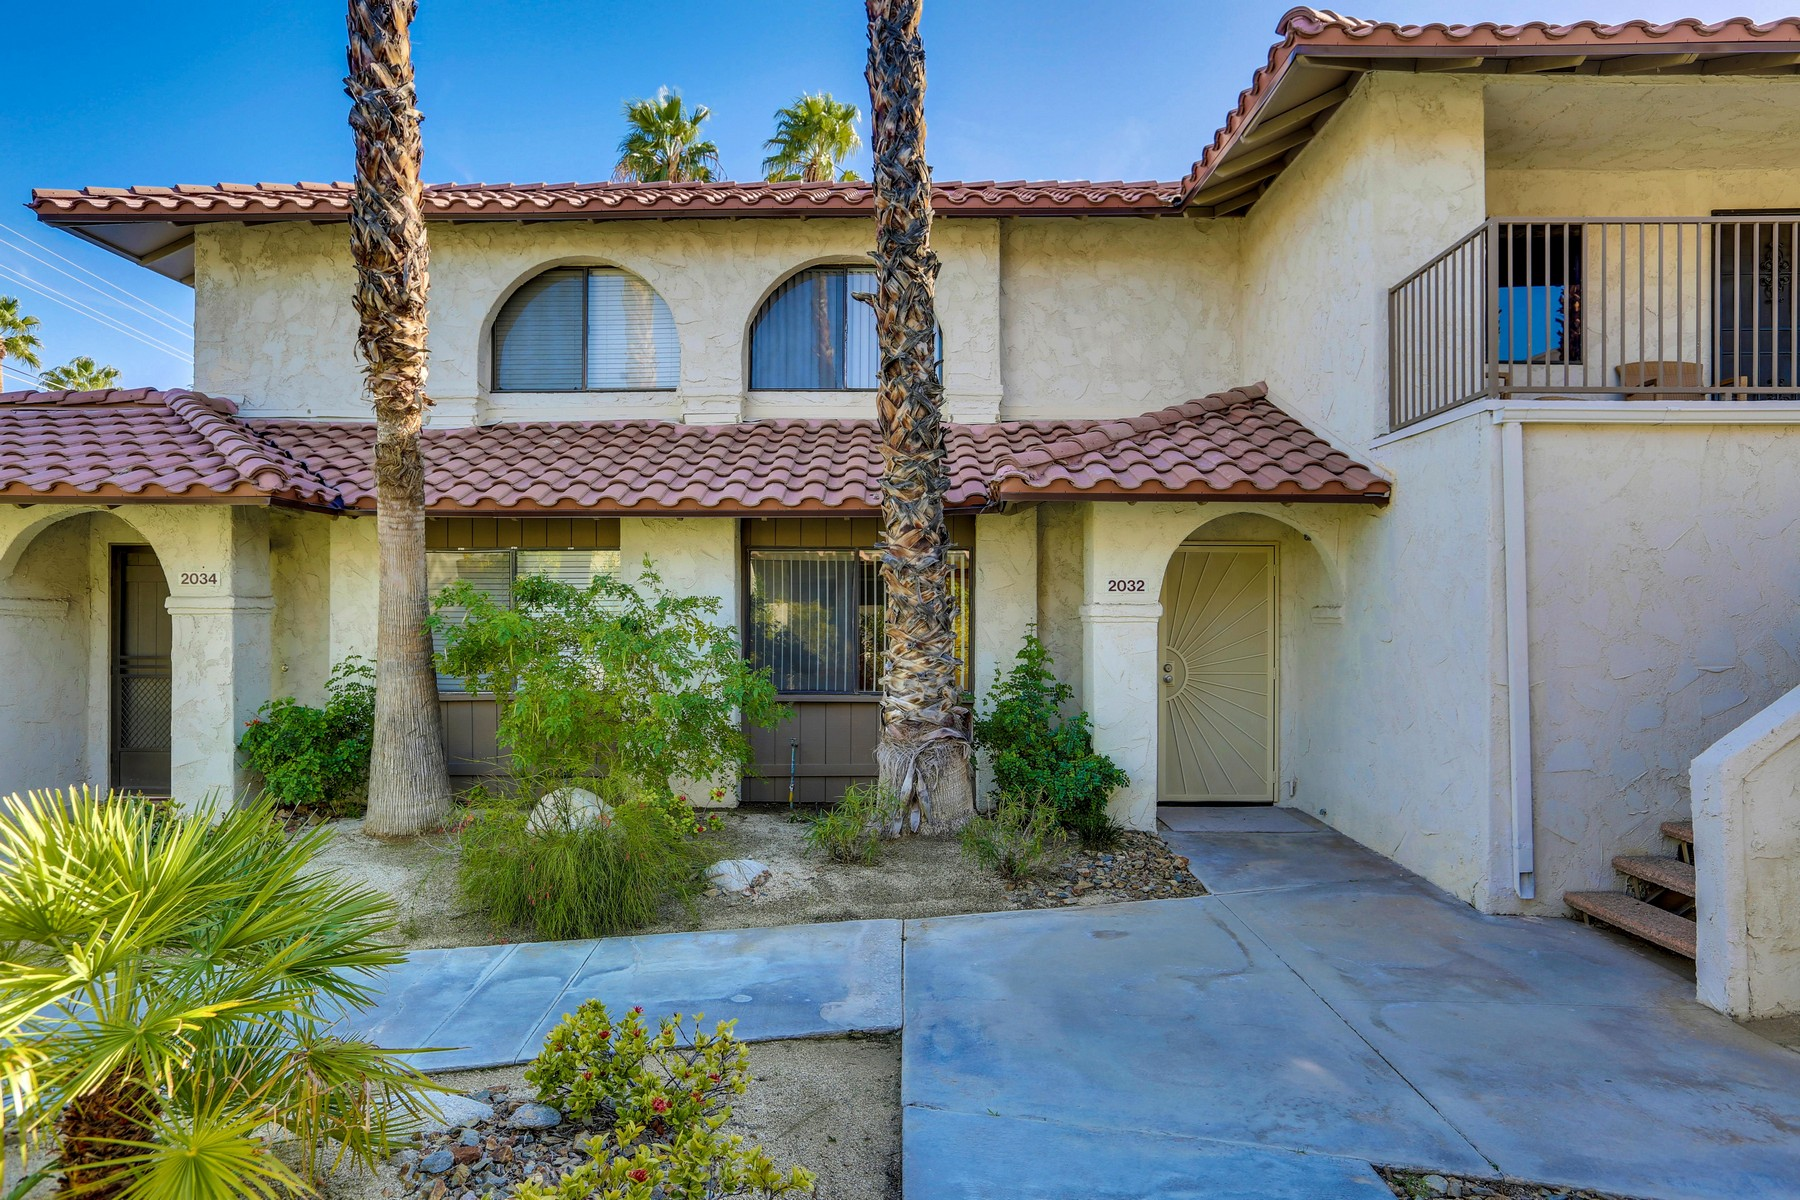 Condominium for Sale at 2032 North Mira Vista Way Palm Springs, California, 92262 United States